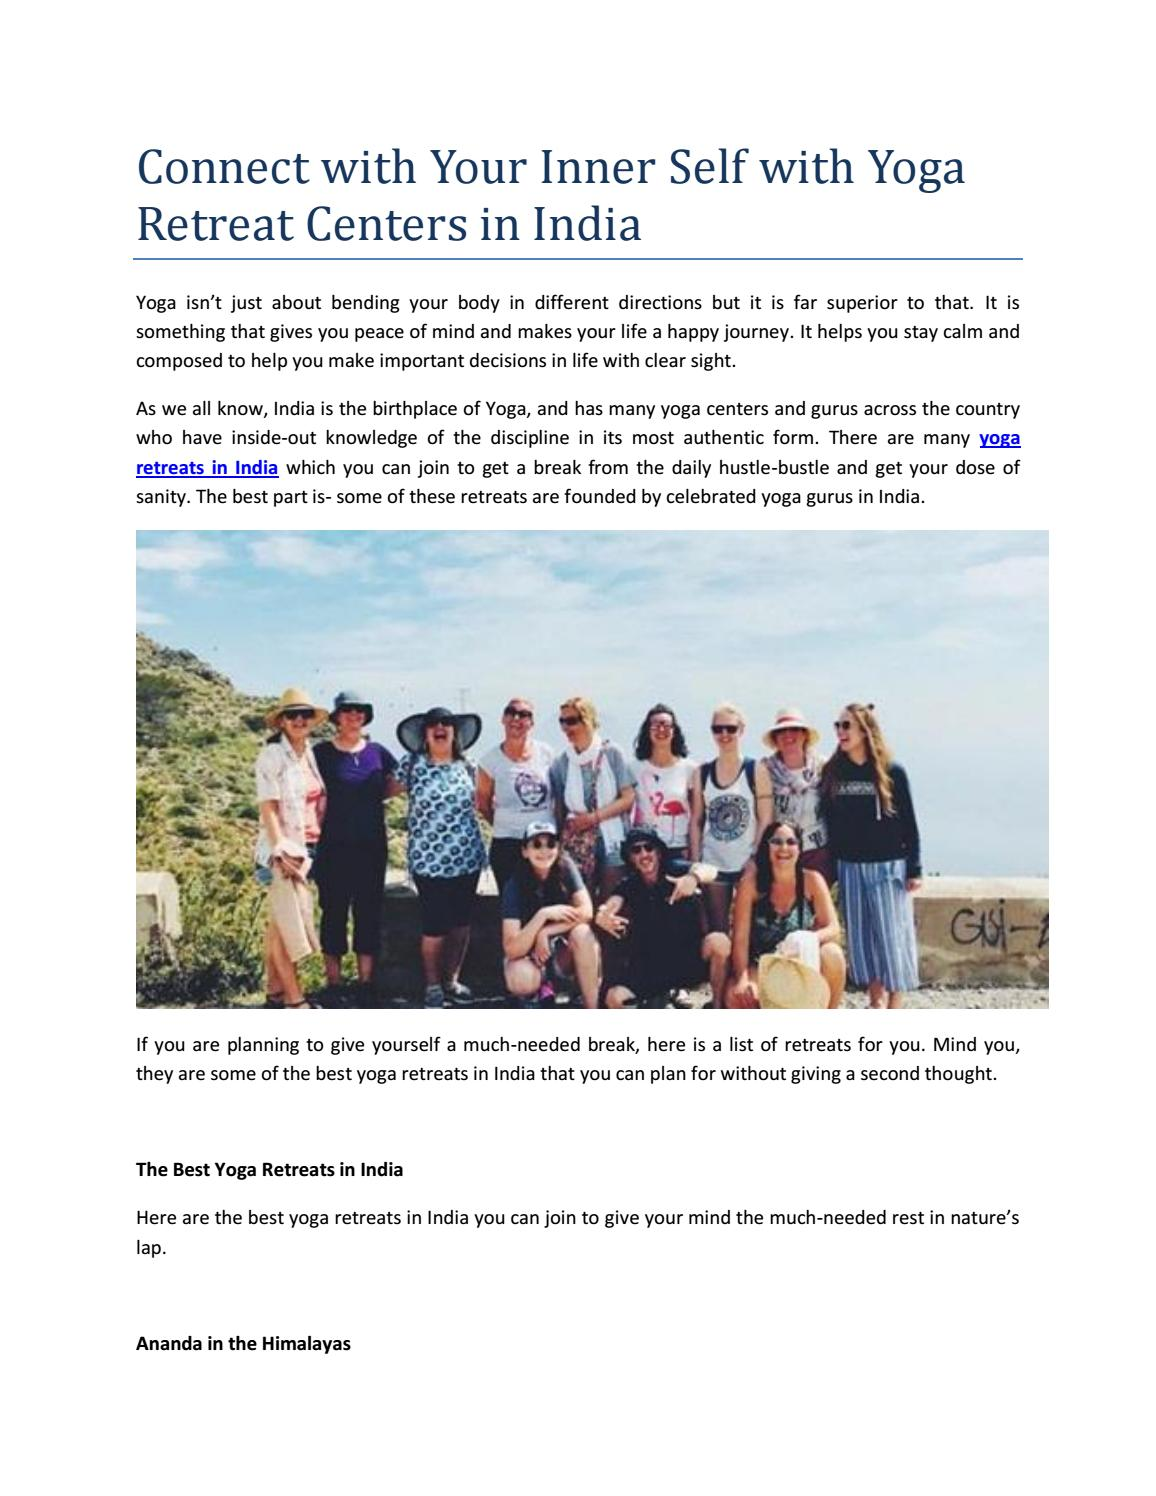 Connect With Your Inner Self With Yoga Retreat Centers In India By Complete Unity Yoga Issuu